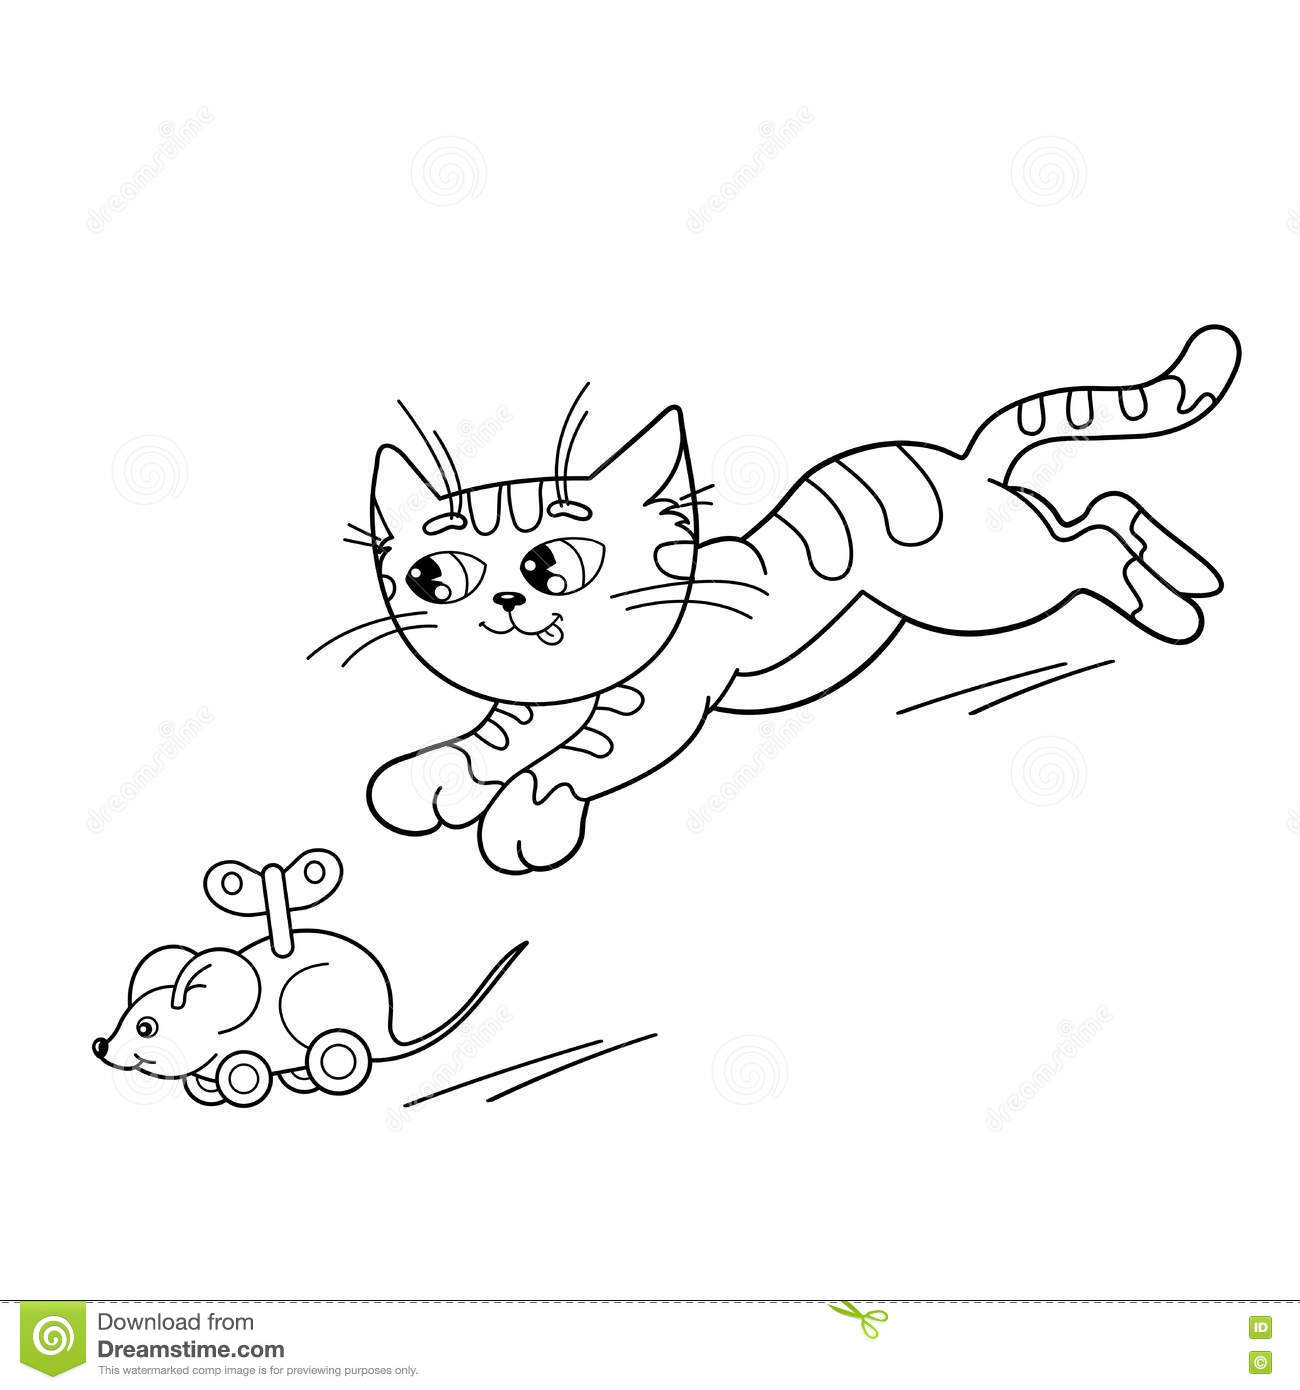 Coloring page outline of cartoon cat playing with toy clockwork mouse coloring book for kids